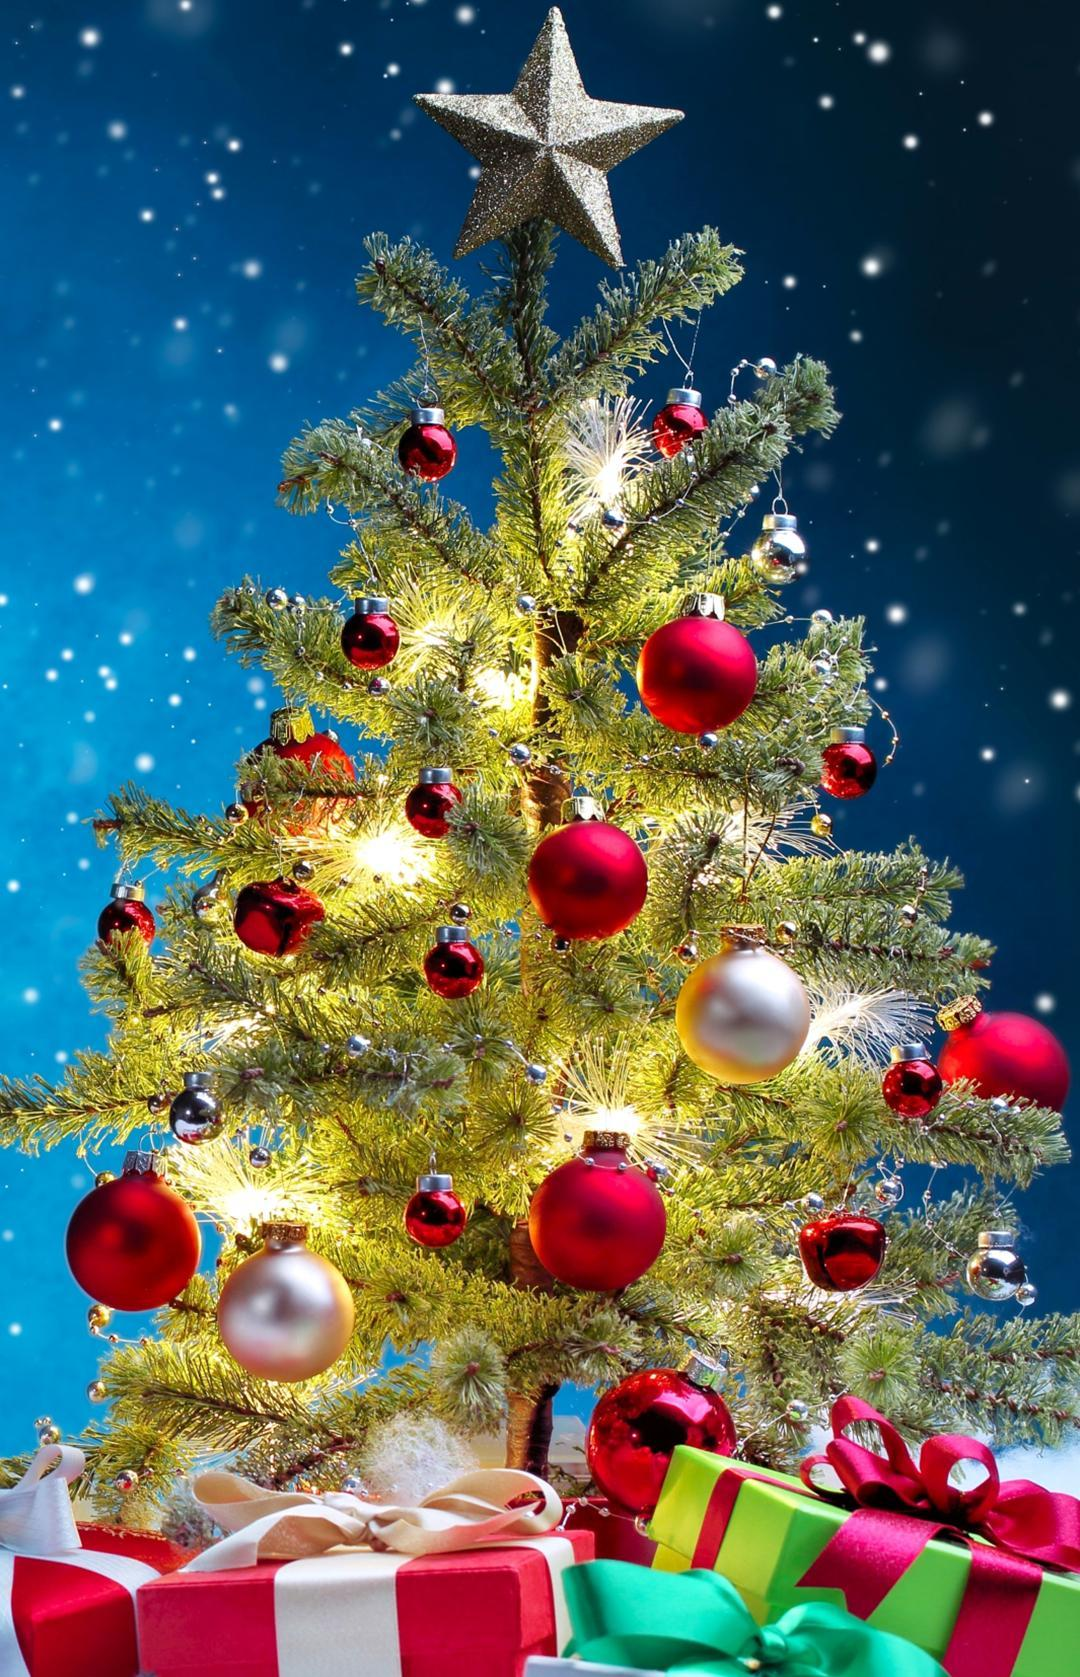 Christmas Tree HD Wallpapers 2019 for Android